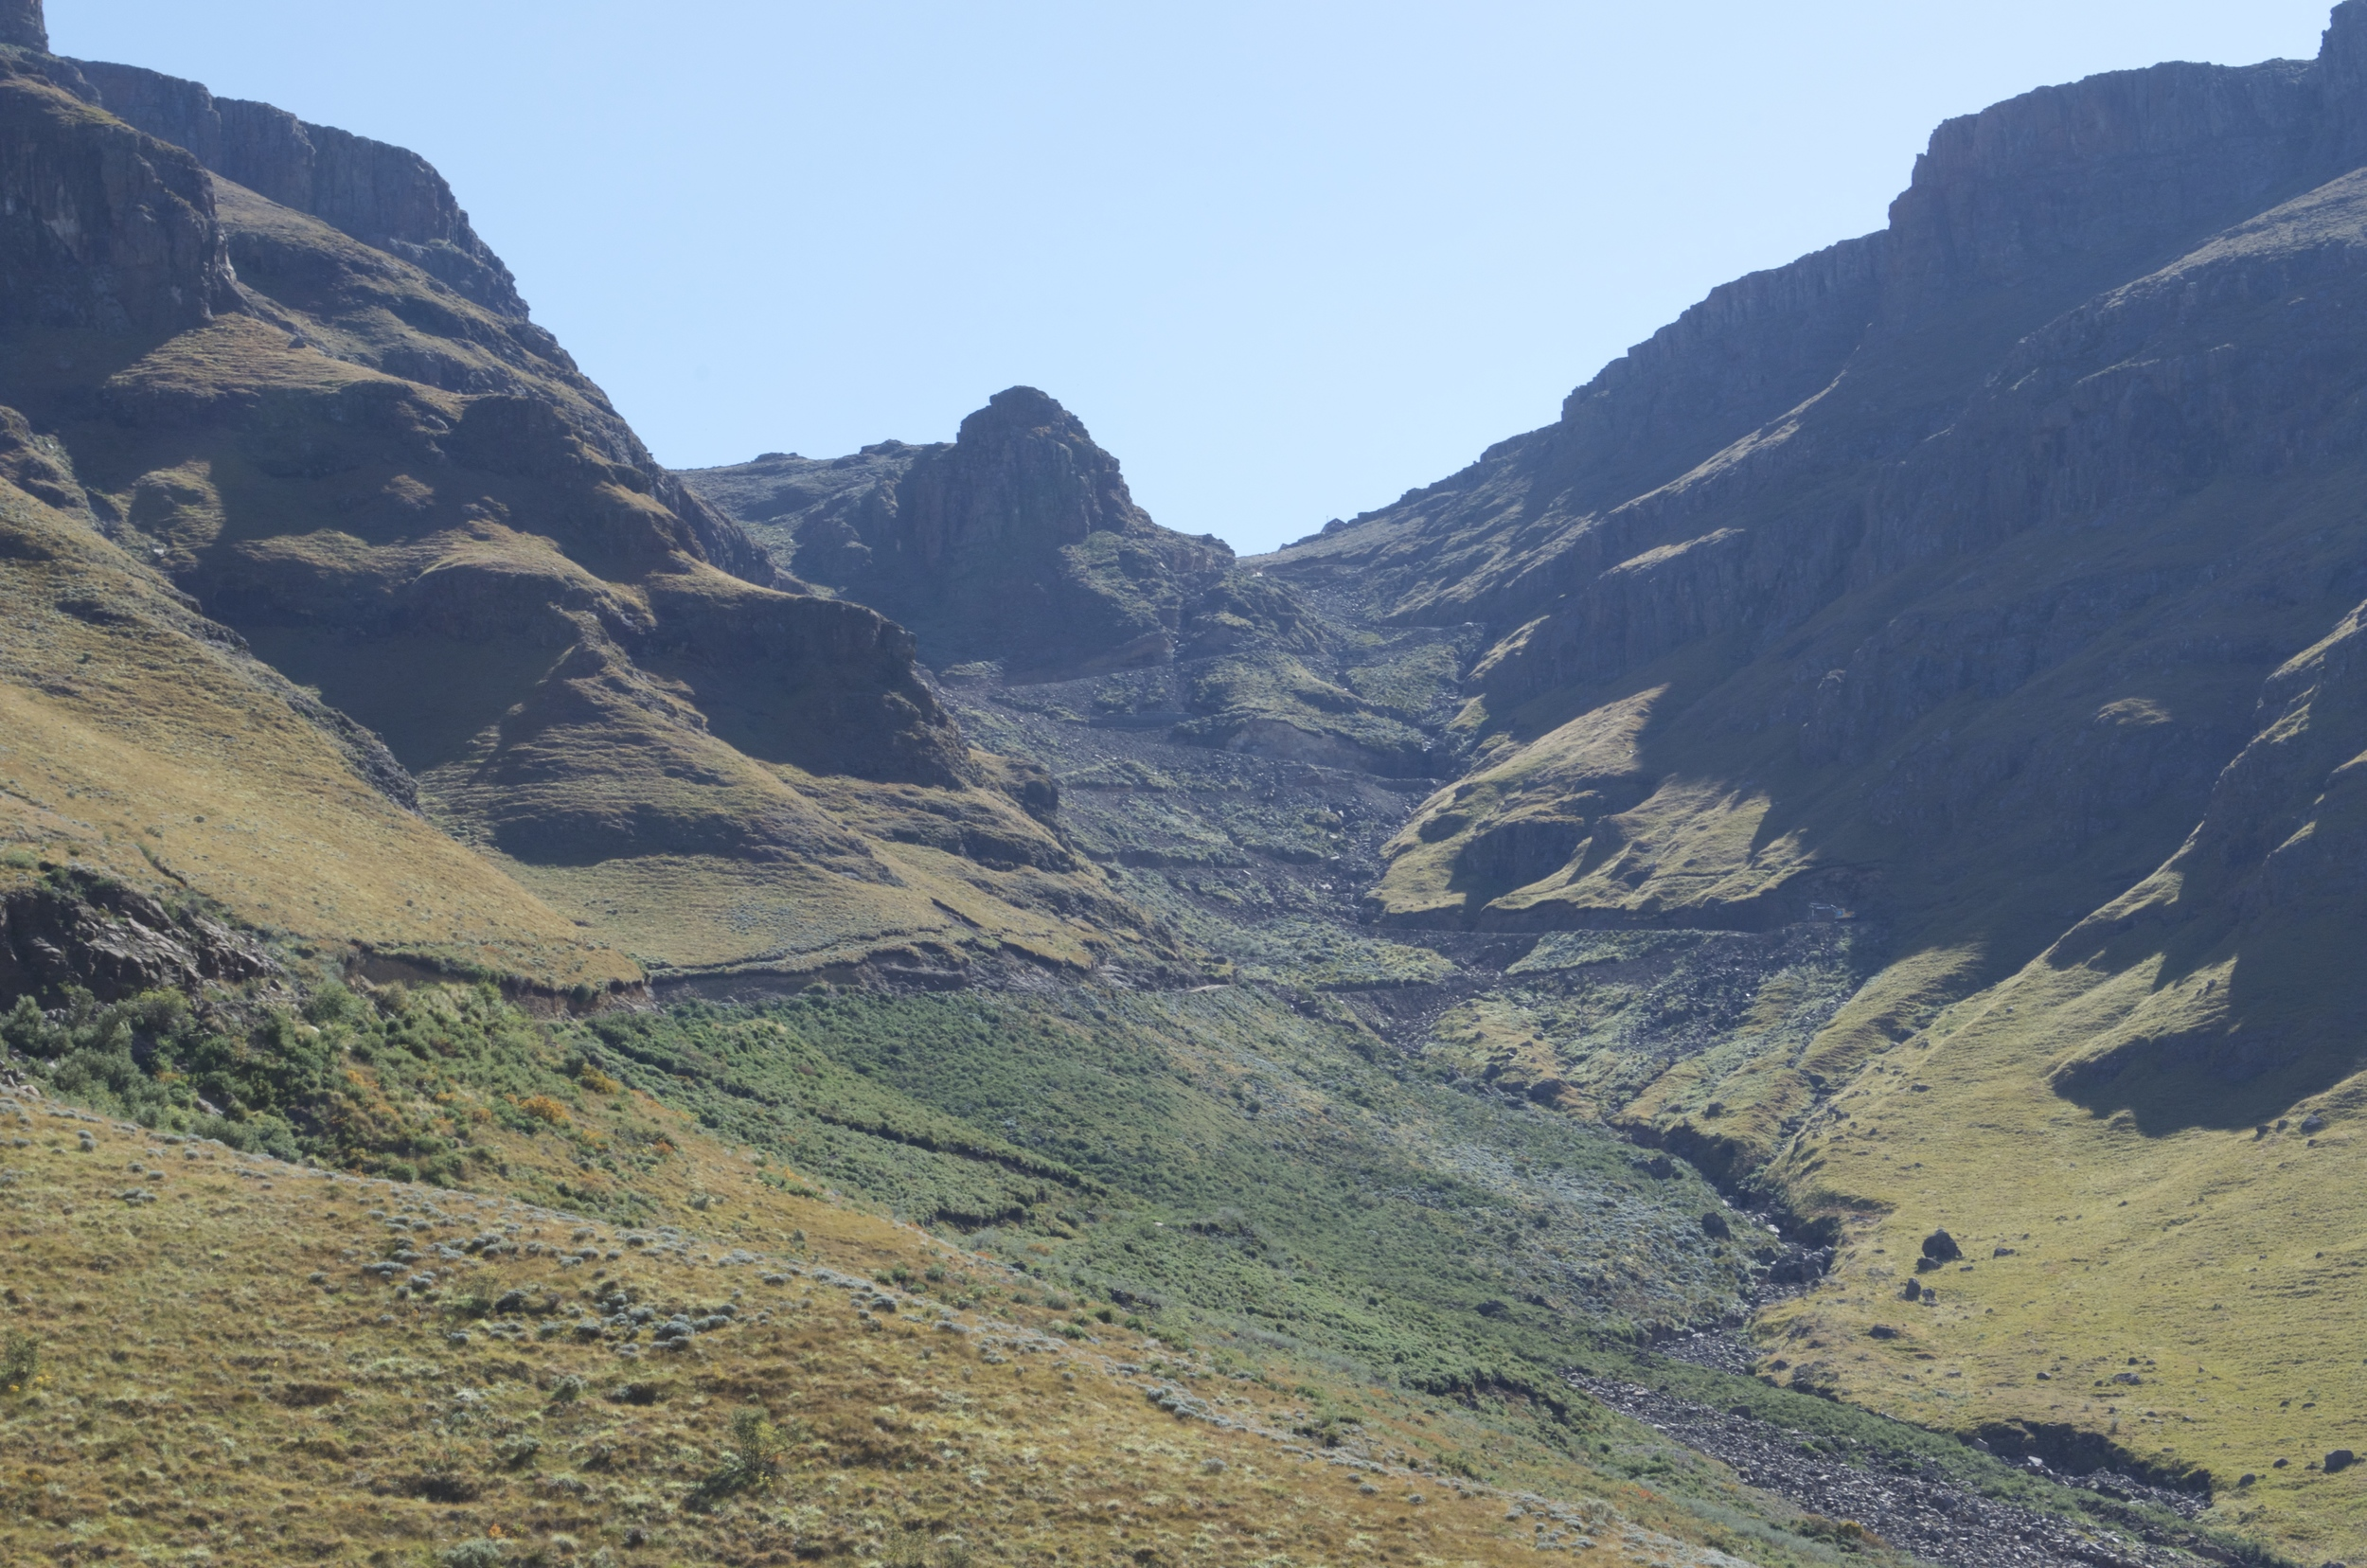 Looking up towards Sani Pass:  8 km of hairpin bends, loose rocks, and sheer drops.